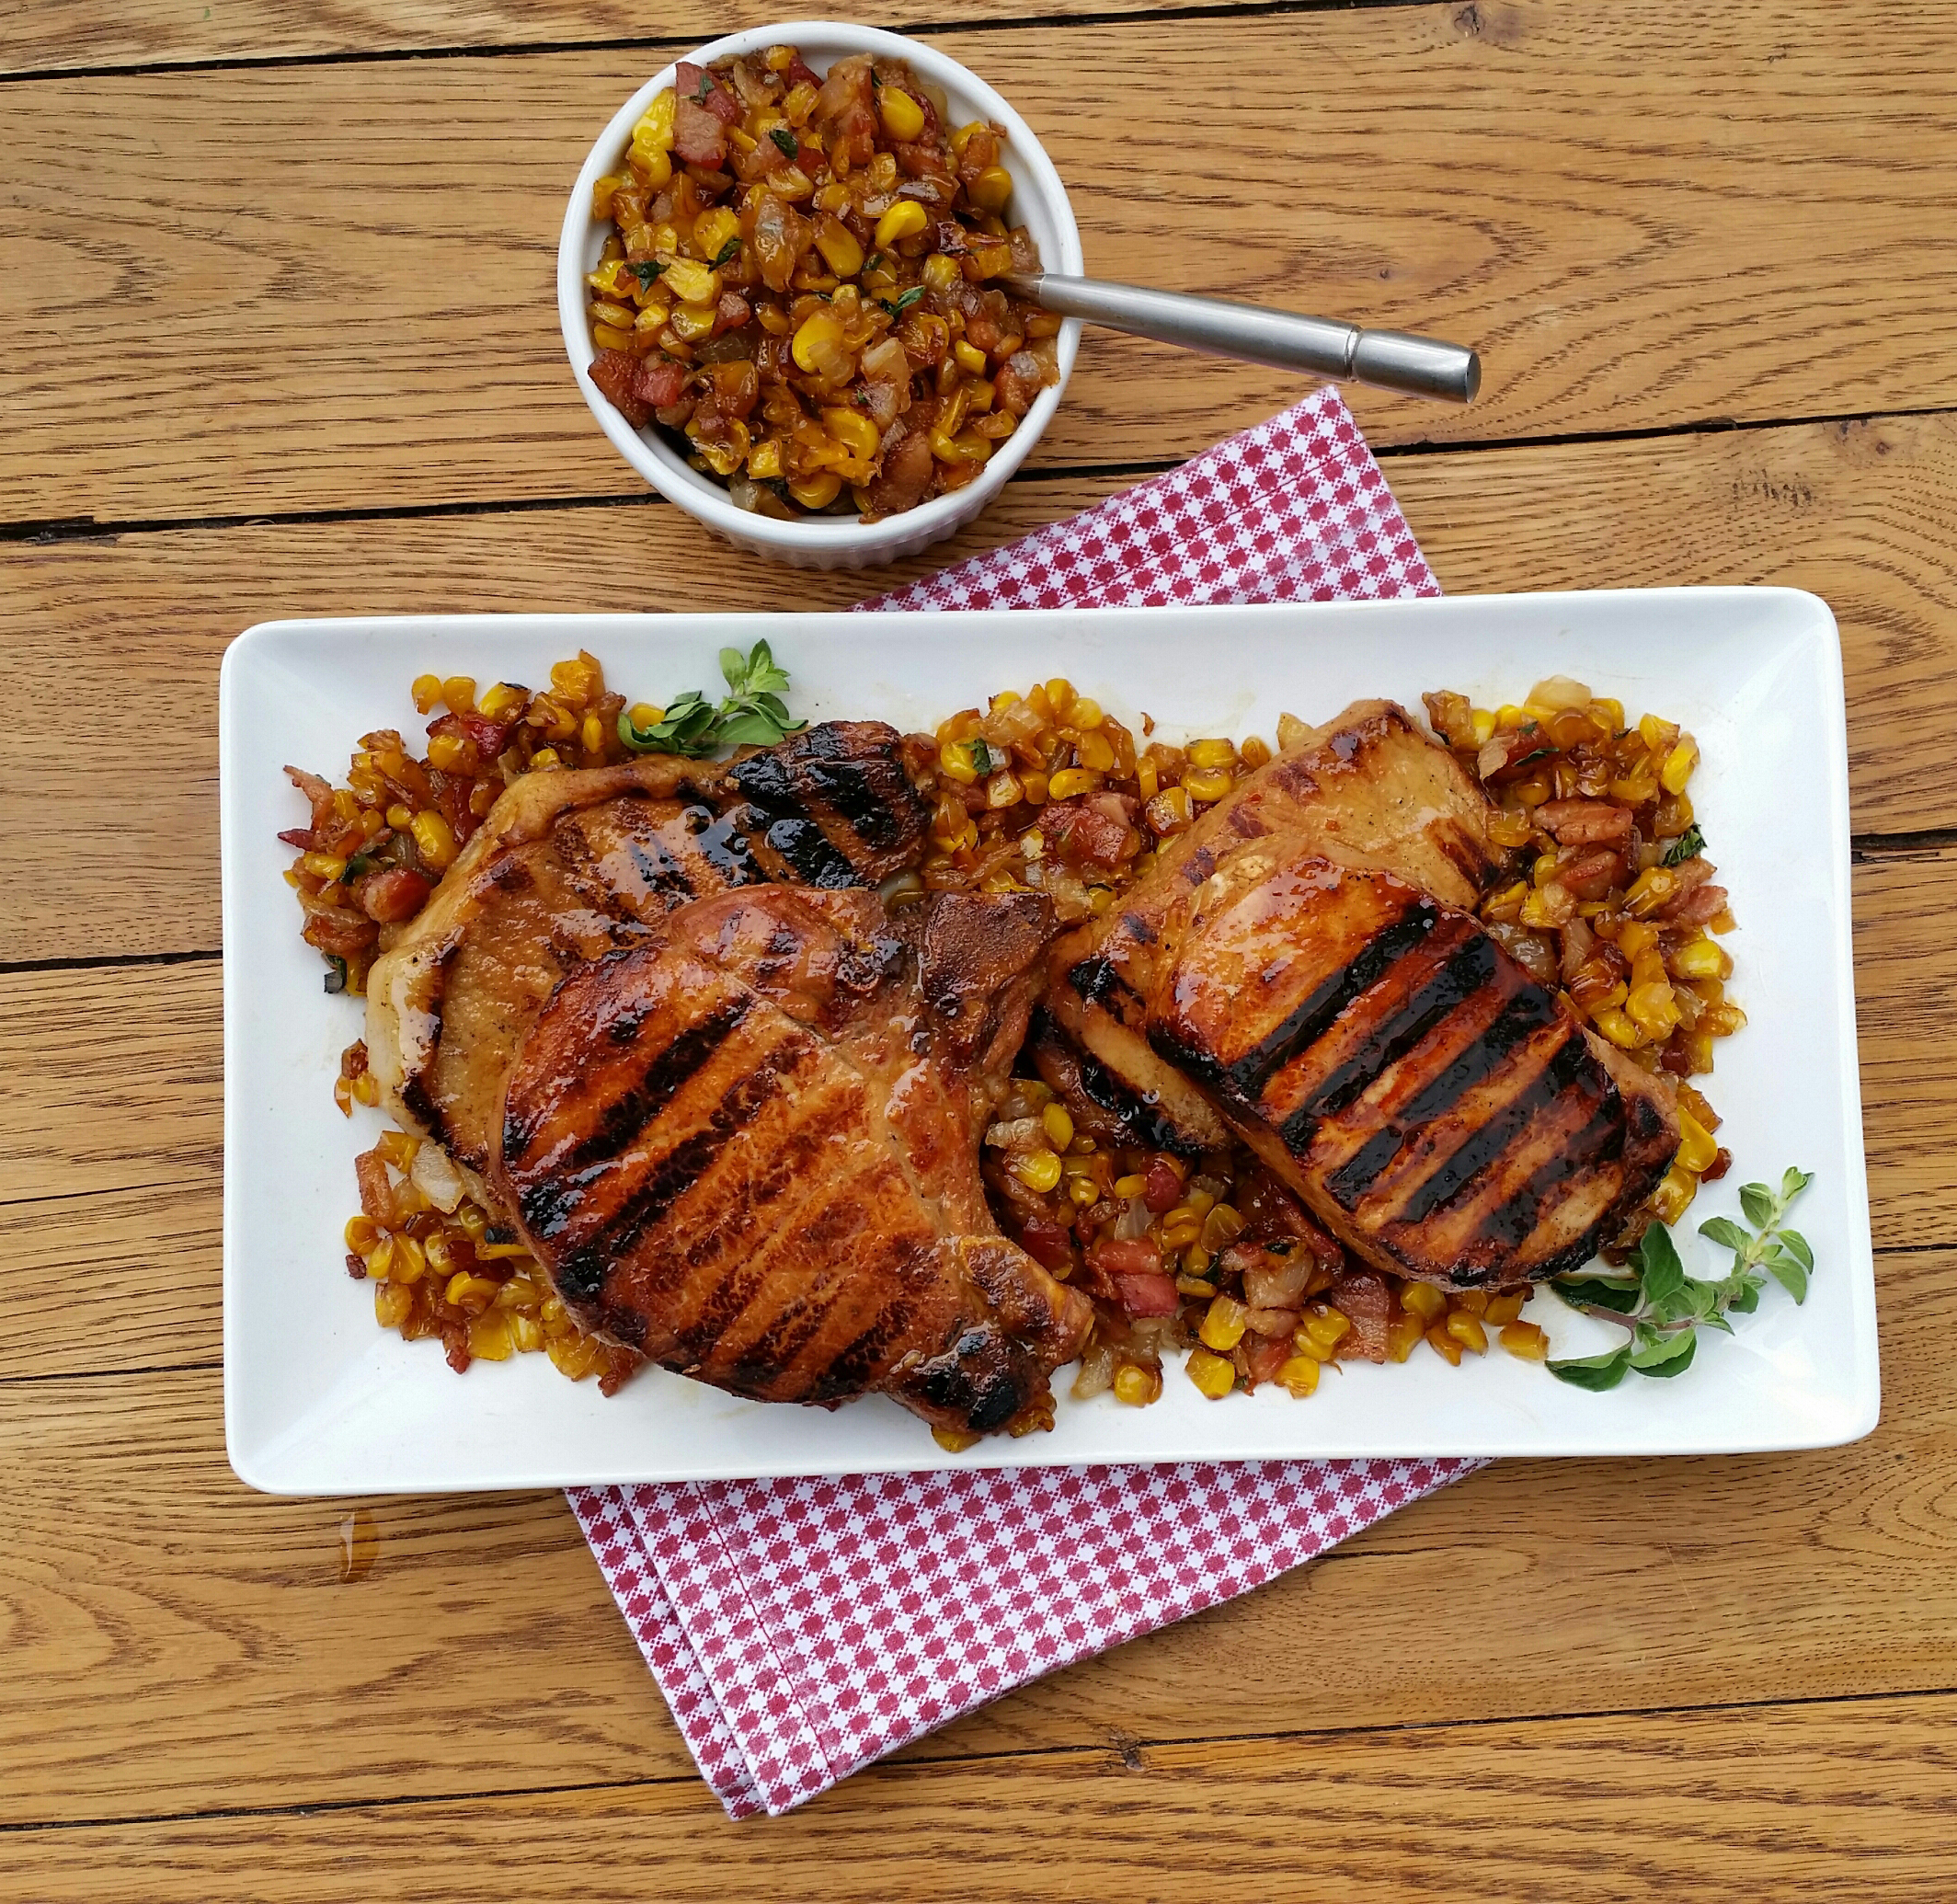 Grilled Pork Tenderloin with Corn-Bacon Relish